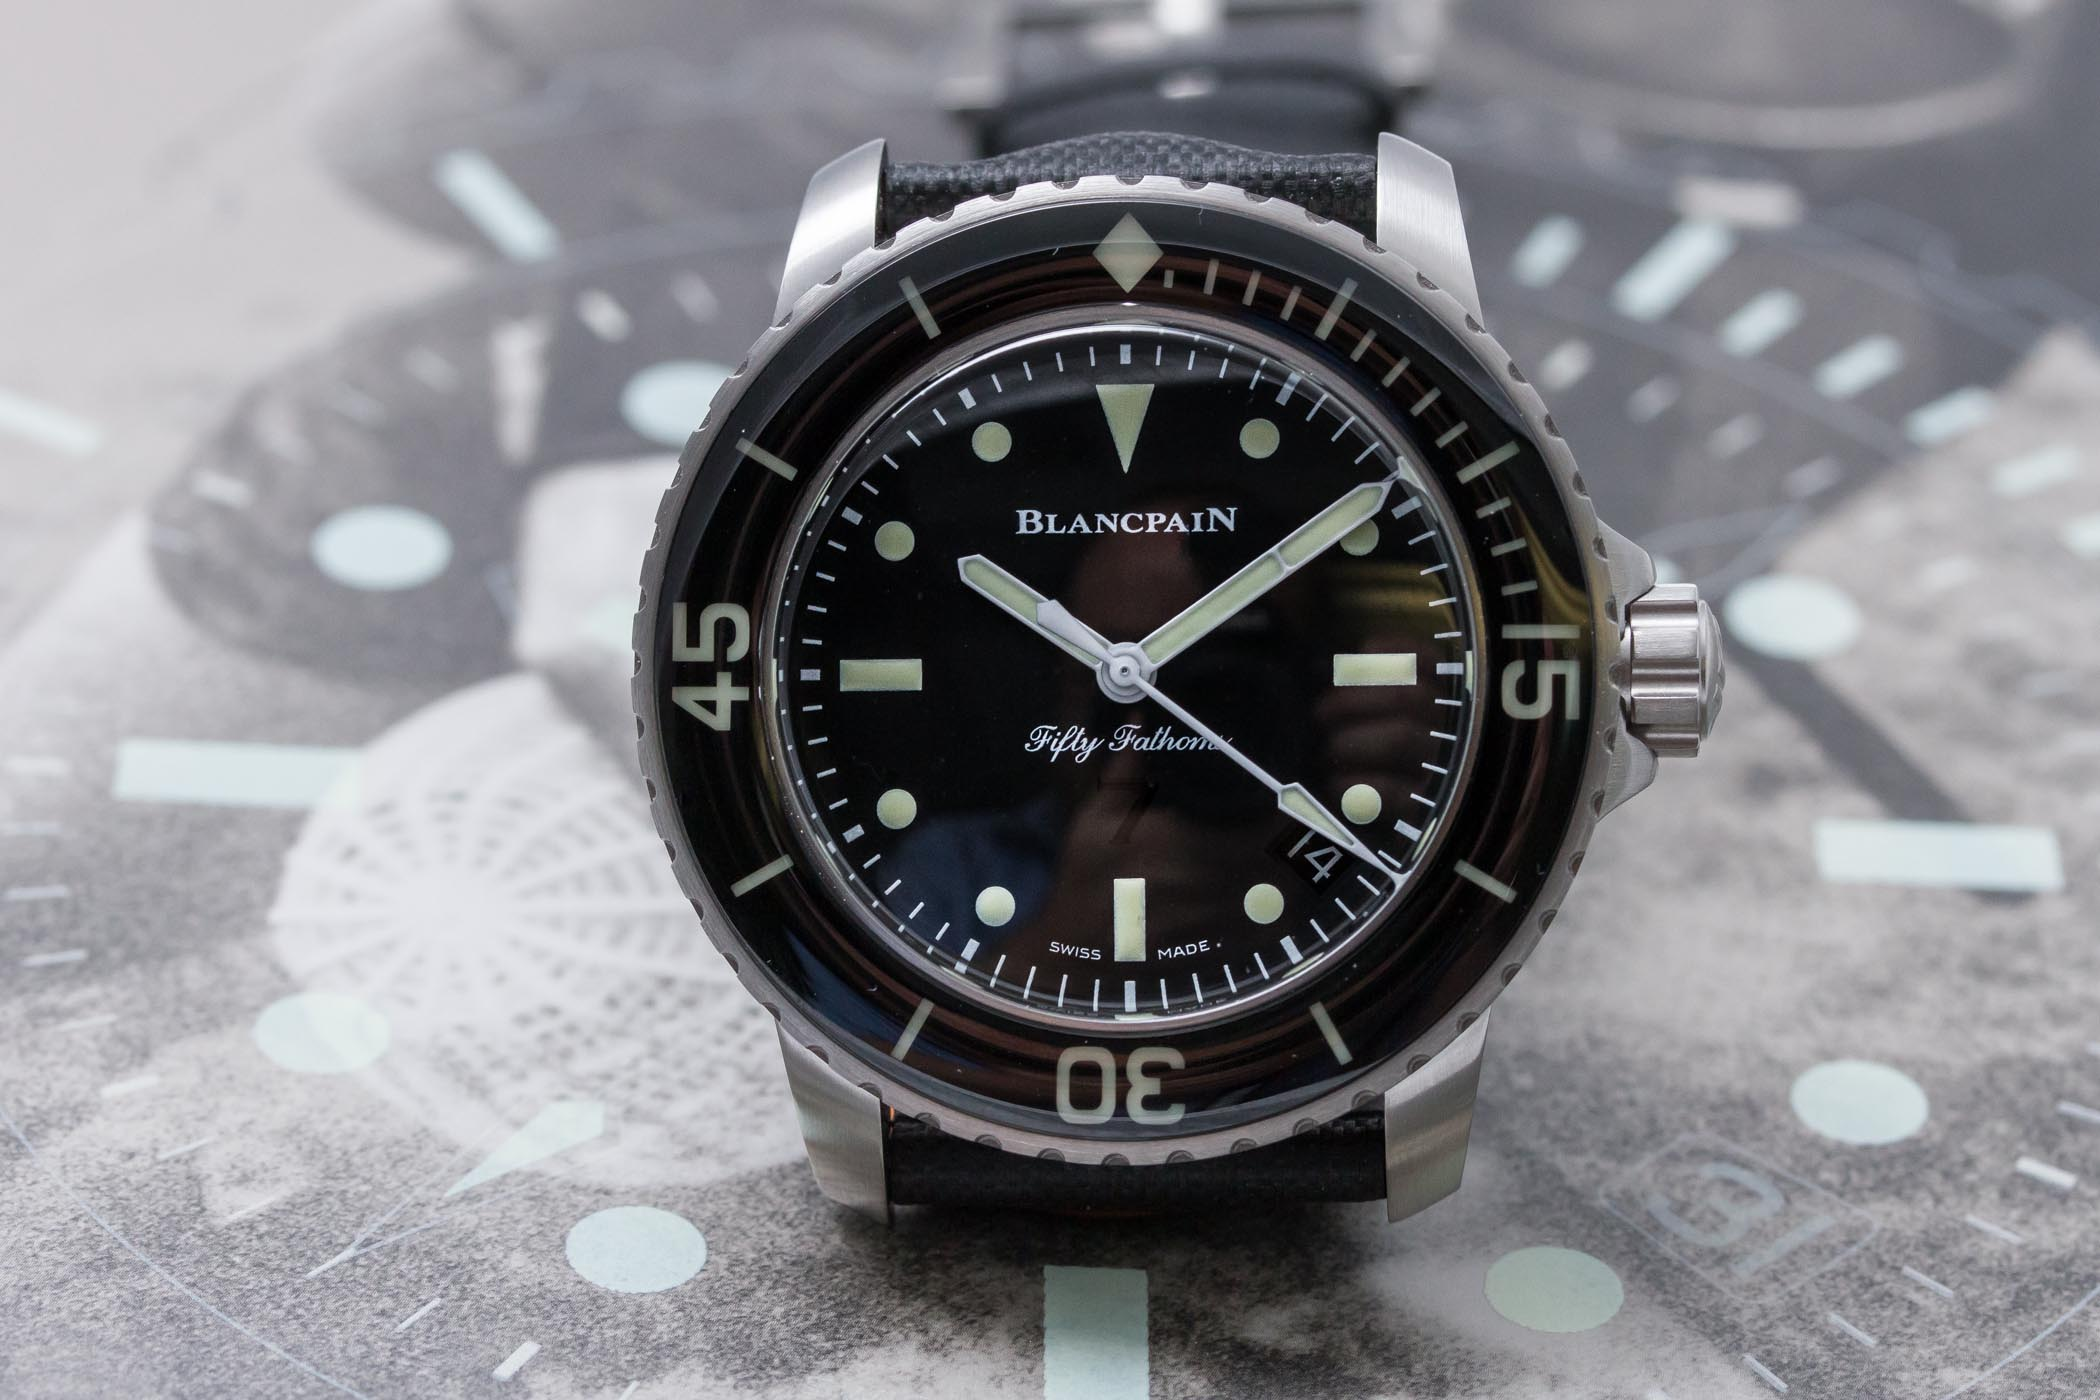 Blancpain Fifty Fathoms Nageurs de Combat Limited Edition - 5015E